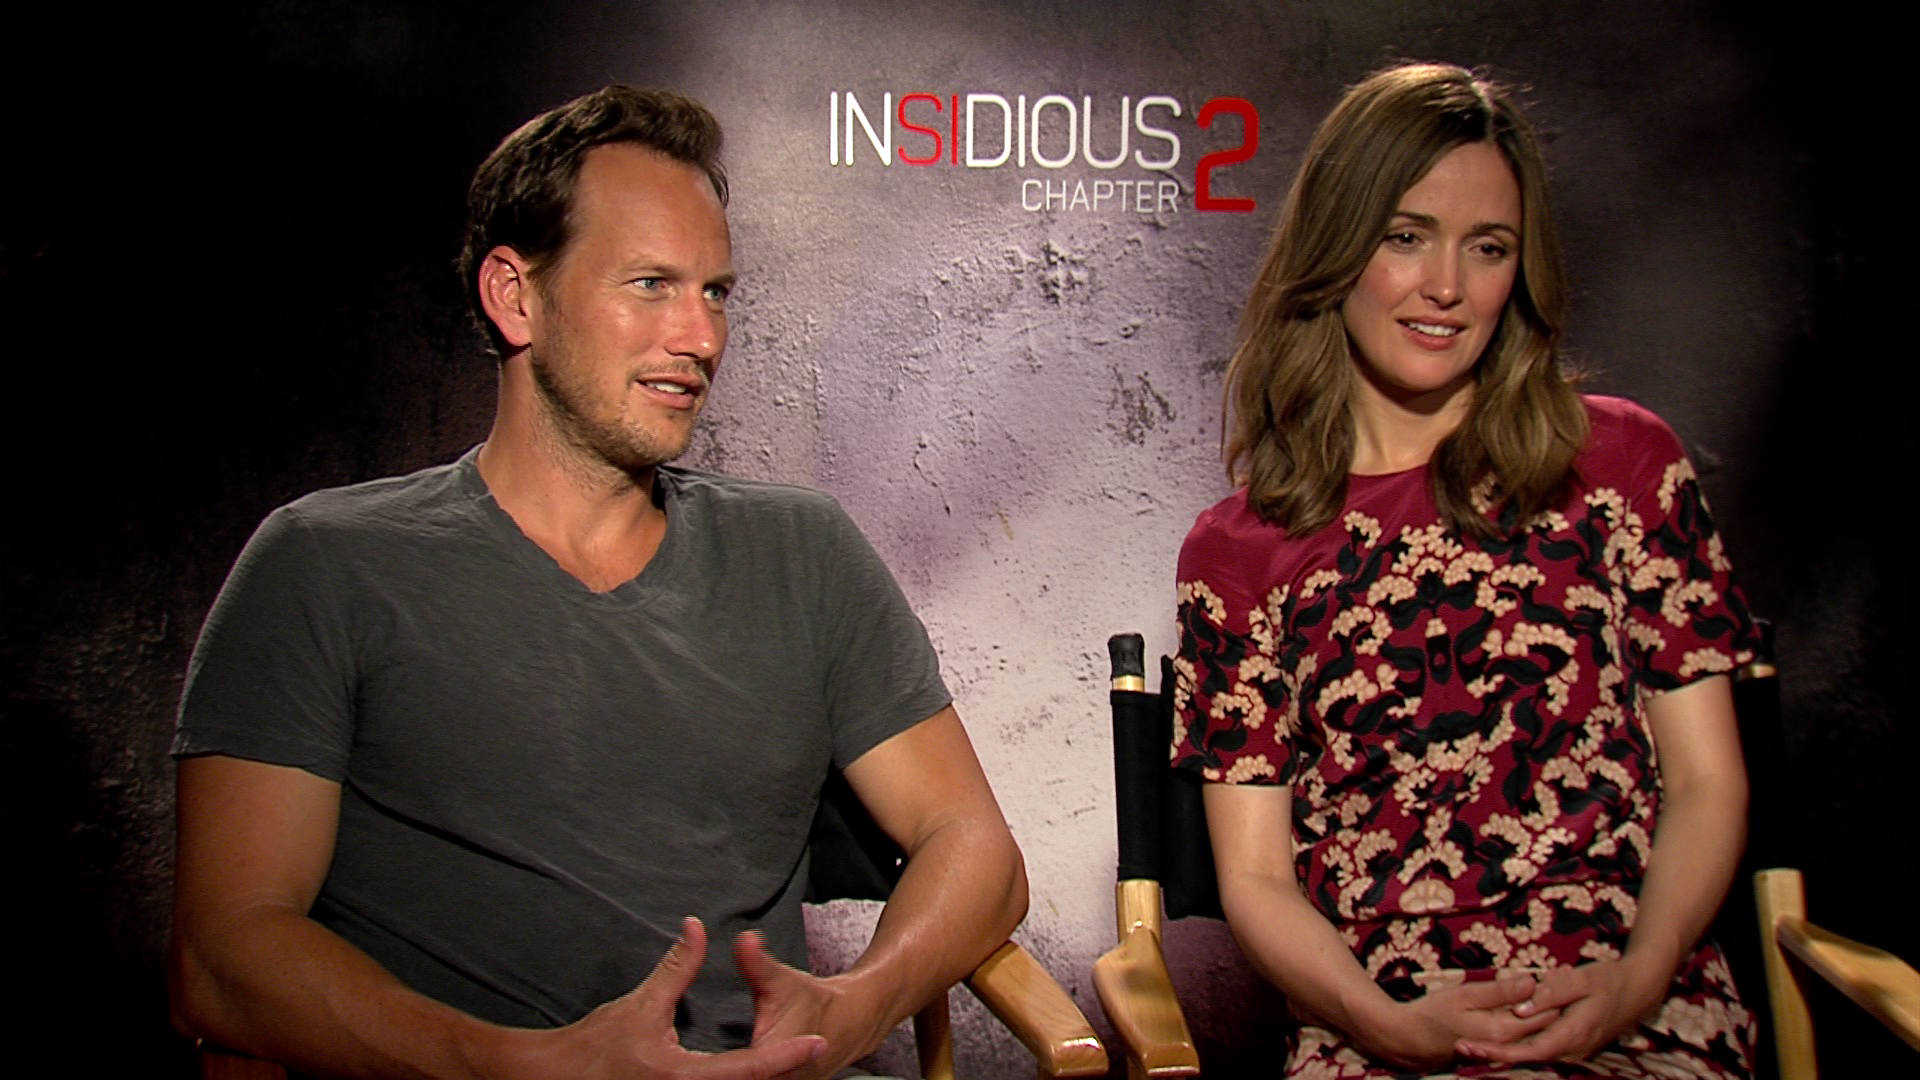 Exclusive Video Interview With The Cast, Writer And Producer Of Insidious: Chapter 2